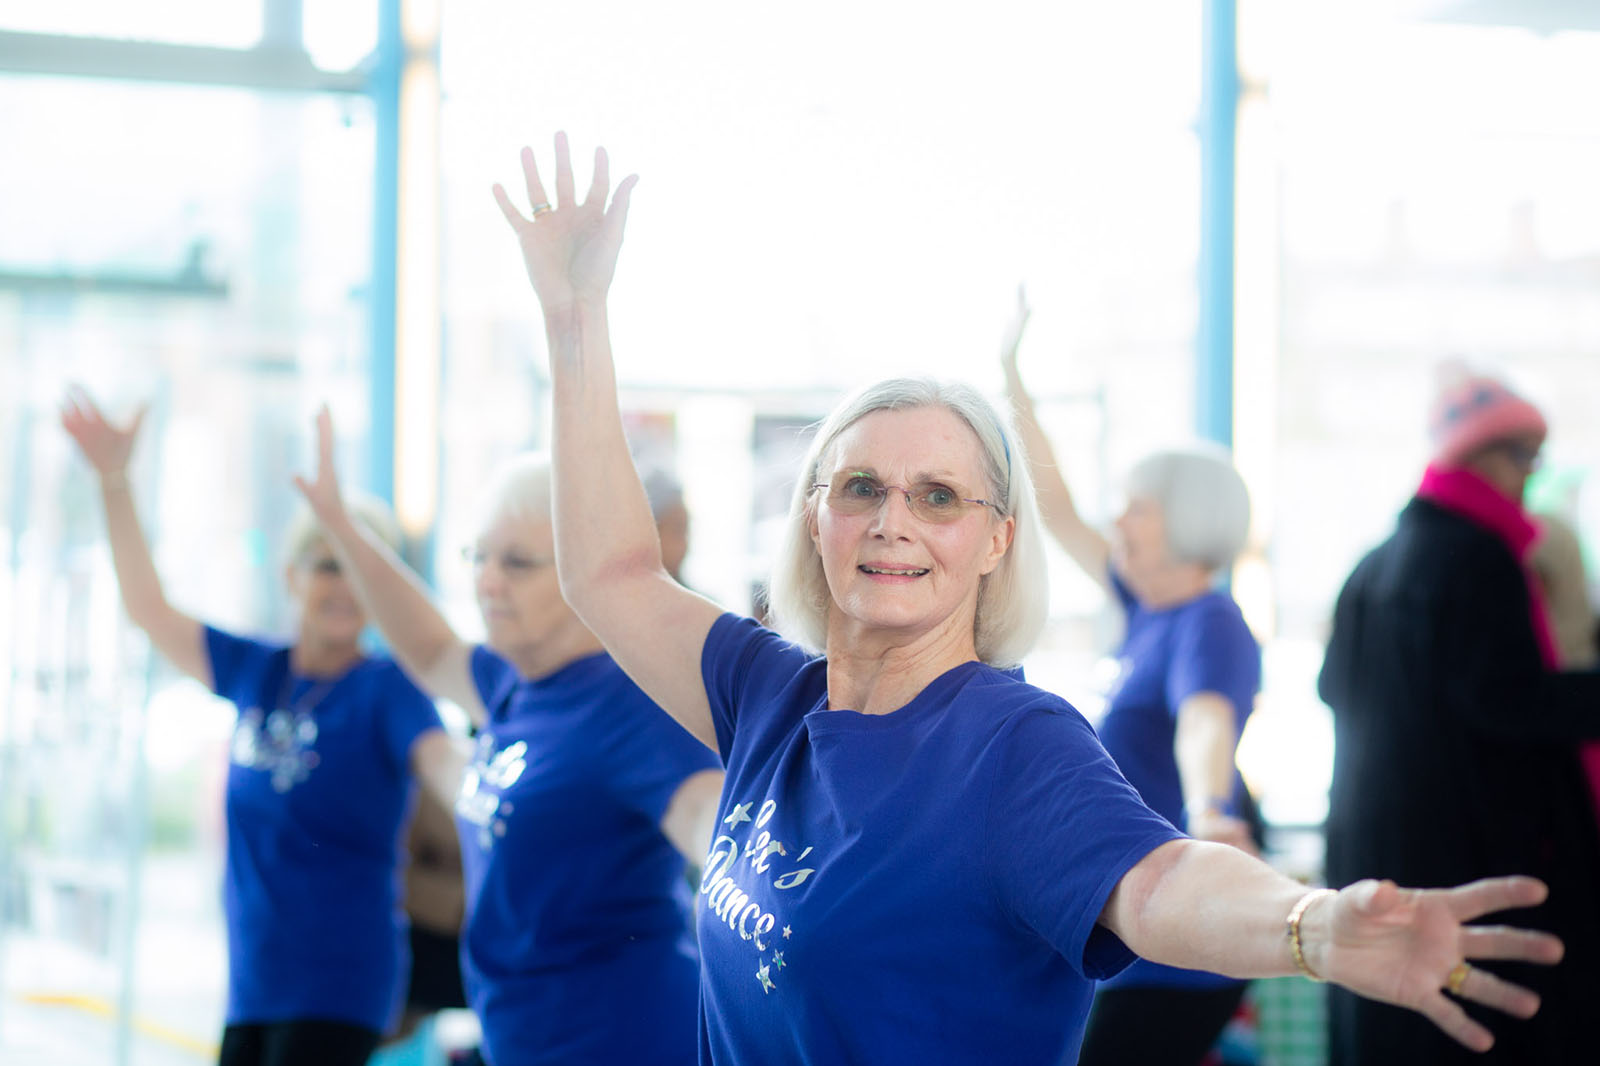 middle aged woman enjoying a dance class